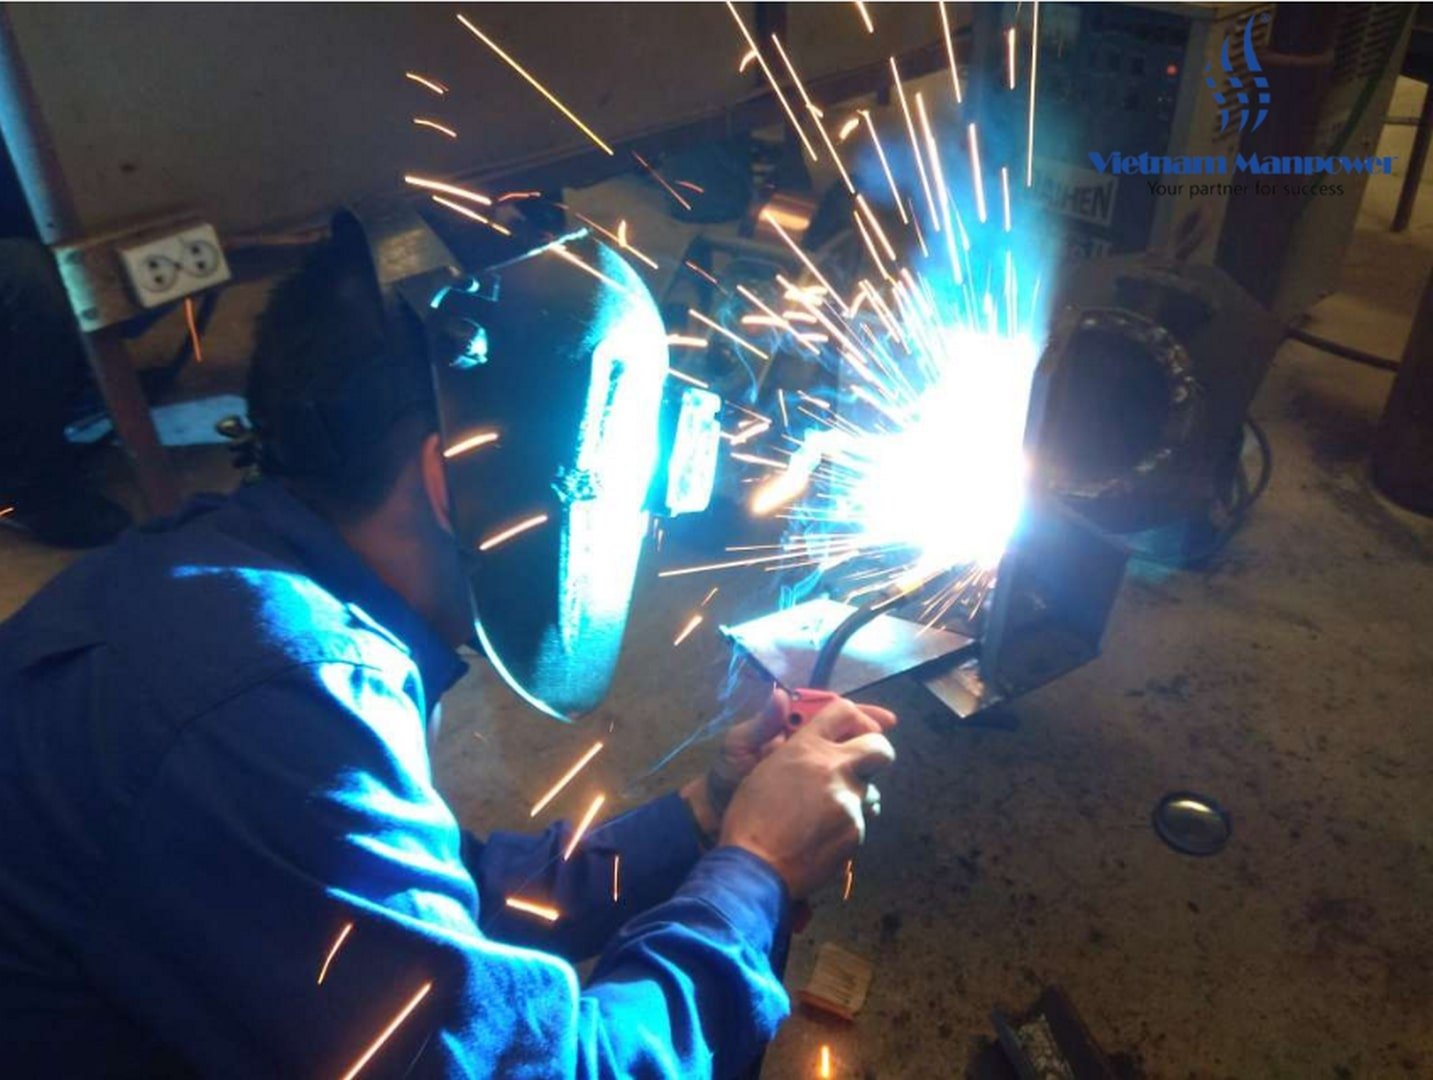 The reasons why employers like to recruit welders in Vietnam